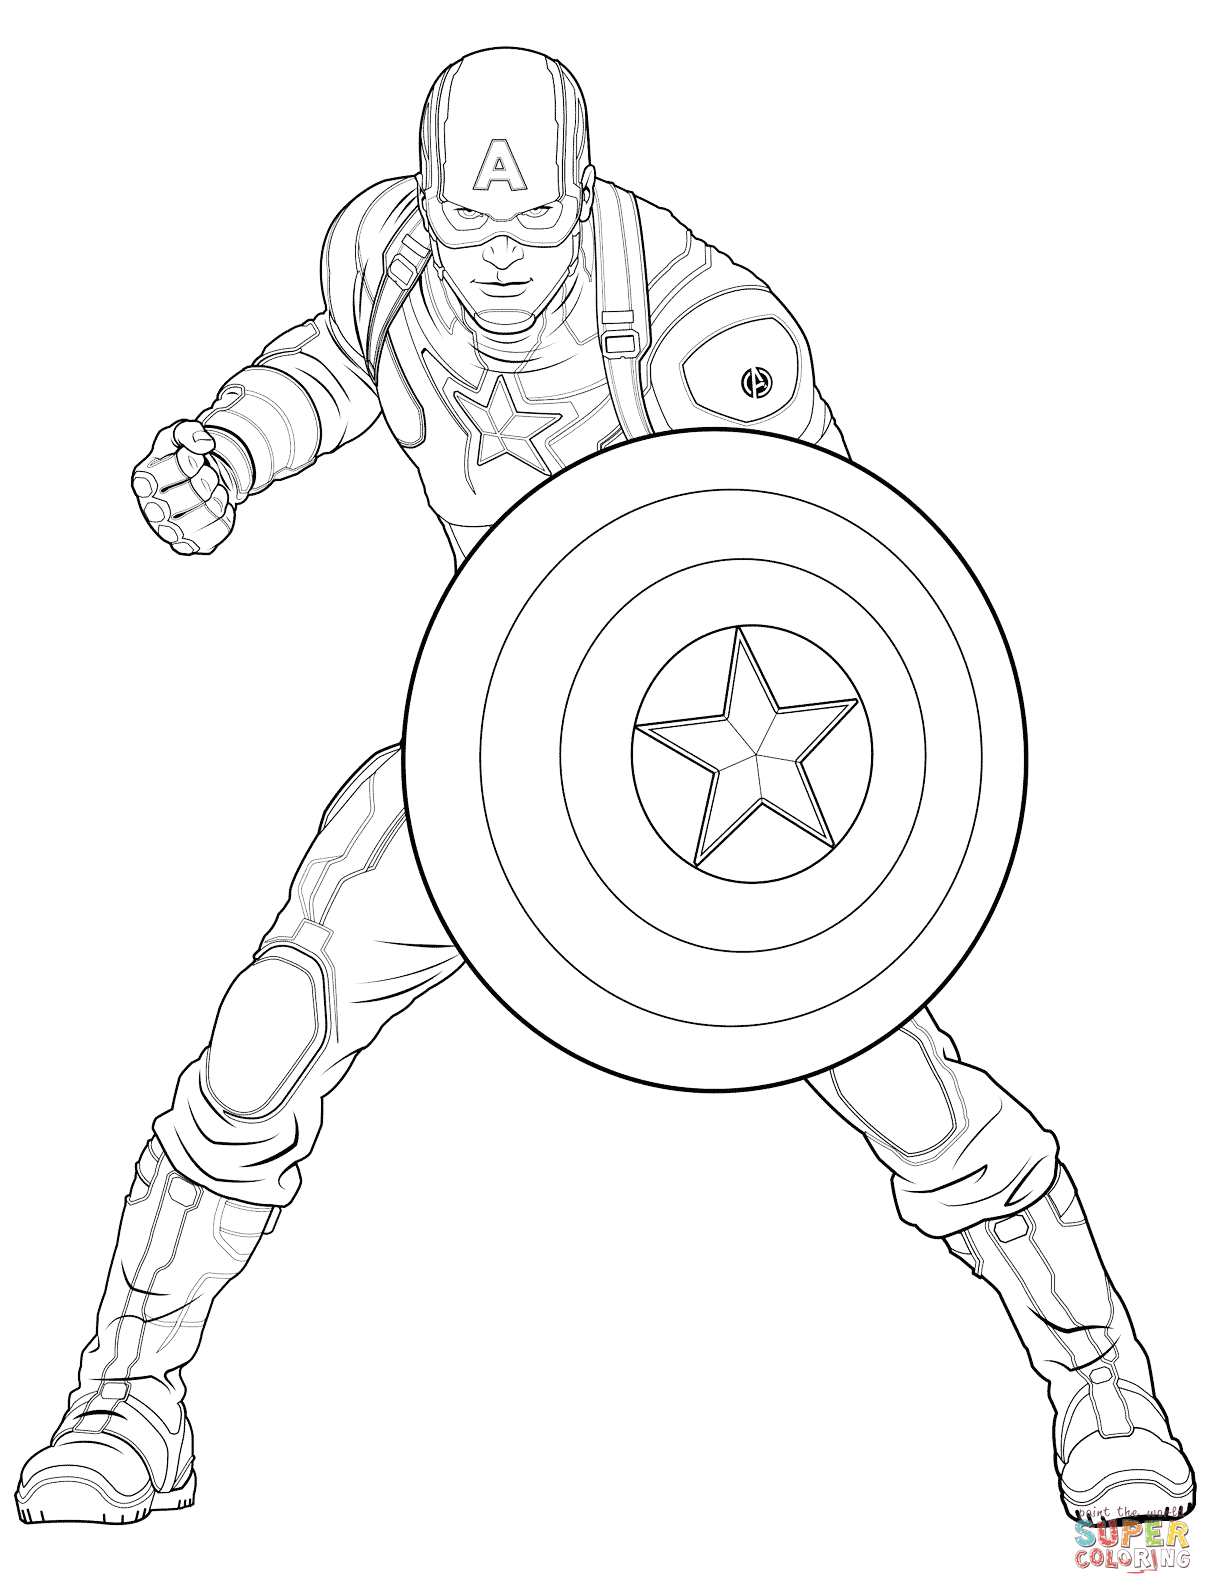 Avengers Captain America Super Coloring Th 232 Me